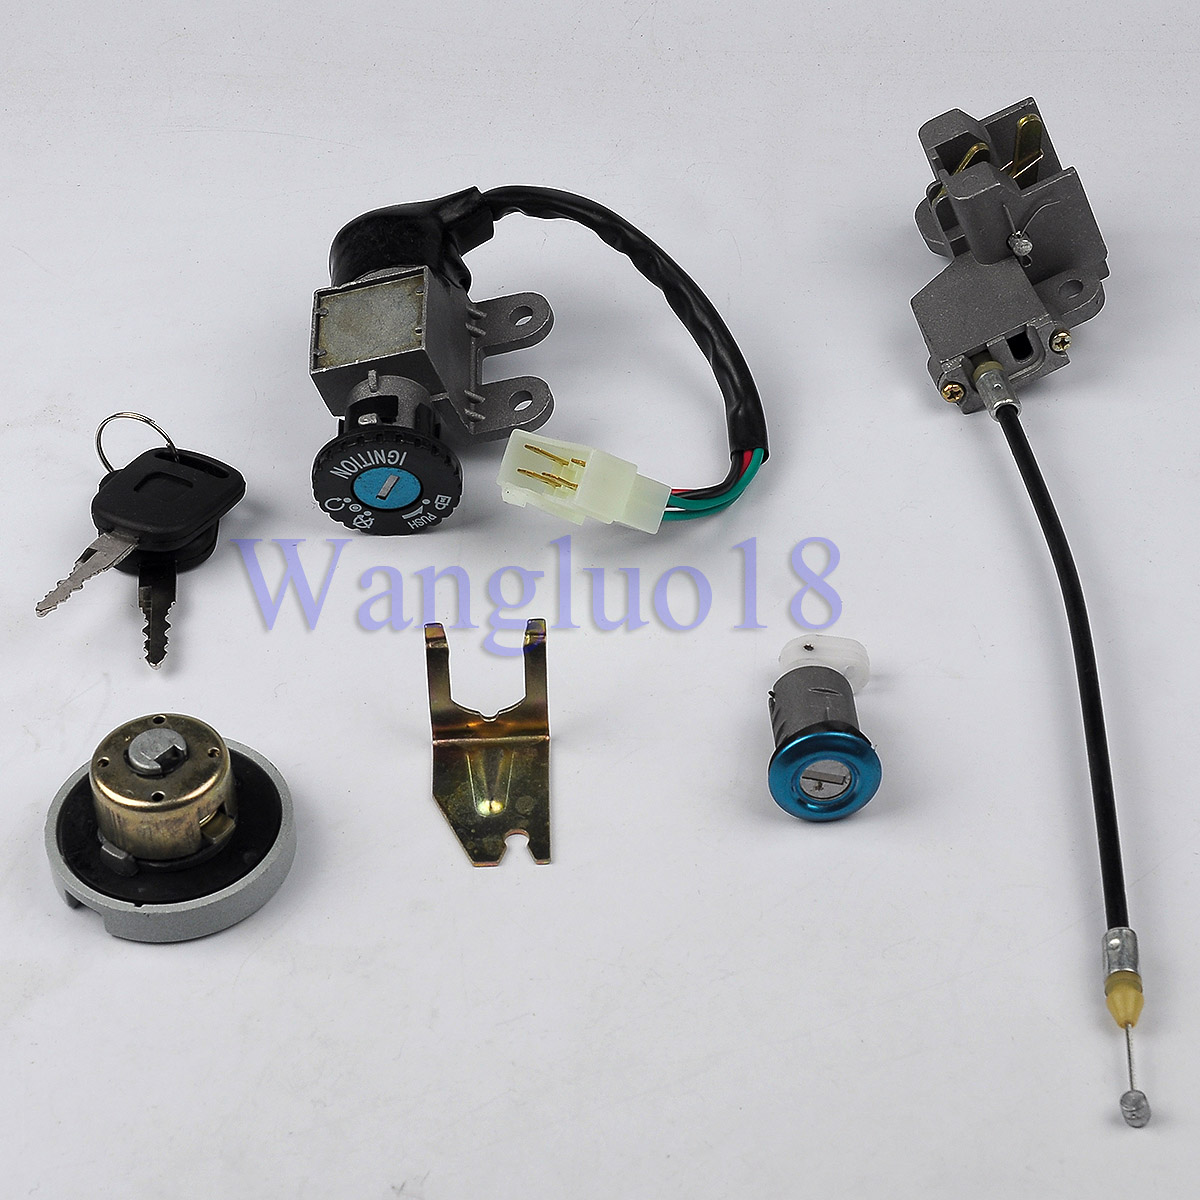 ignition switch key set for 139qmb 50cc chinese scooter. Black Bedroom Furniture Sets. Home Design Ideas